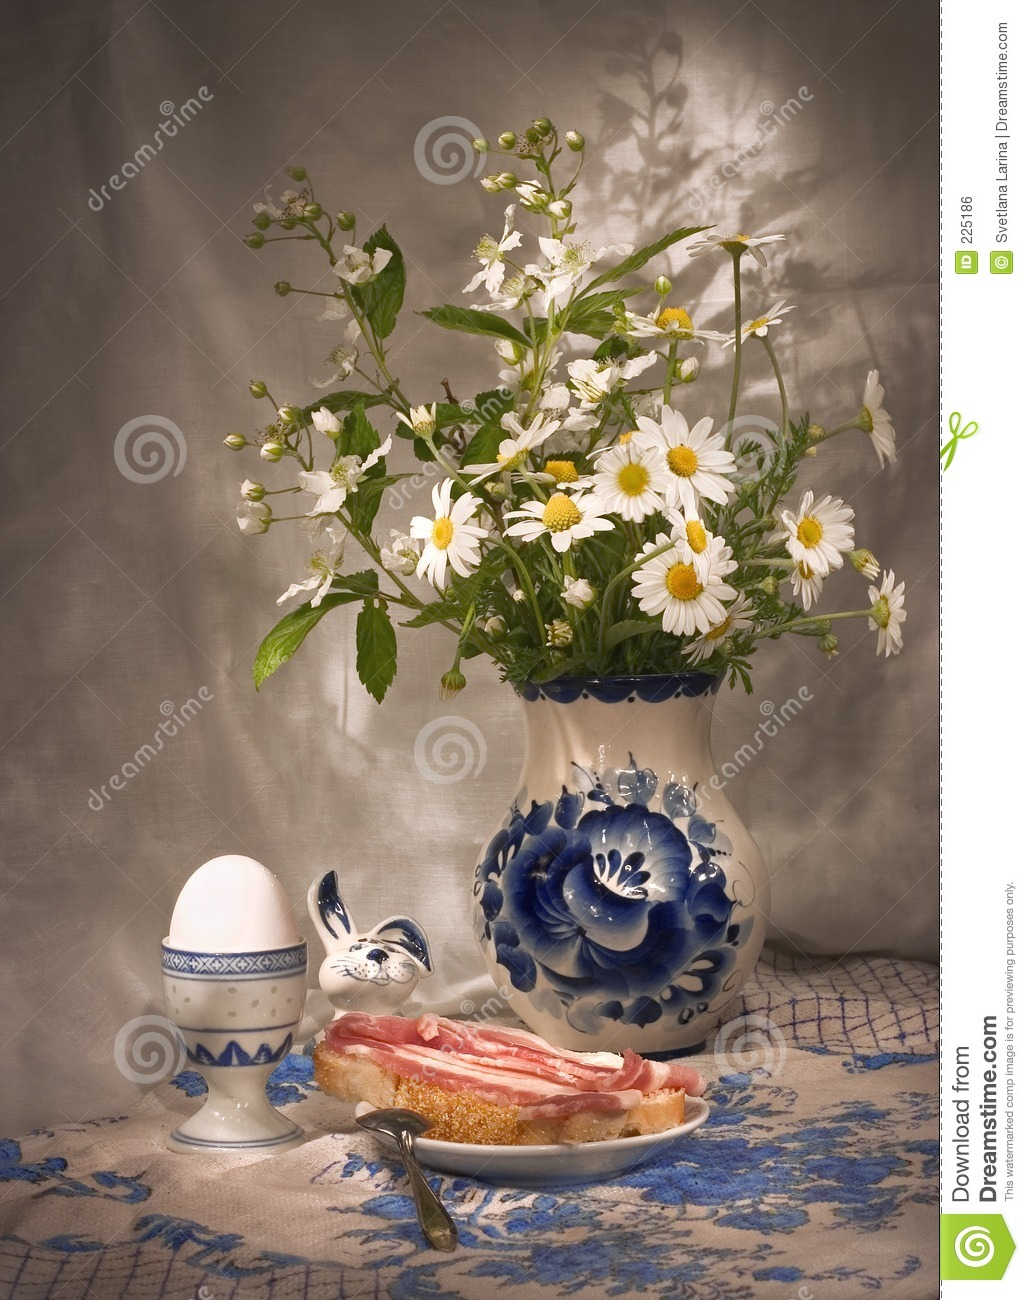 Simple breakfast (3) with daisies